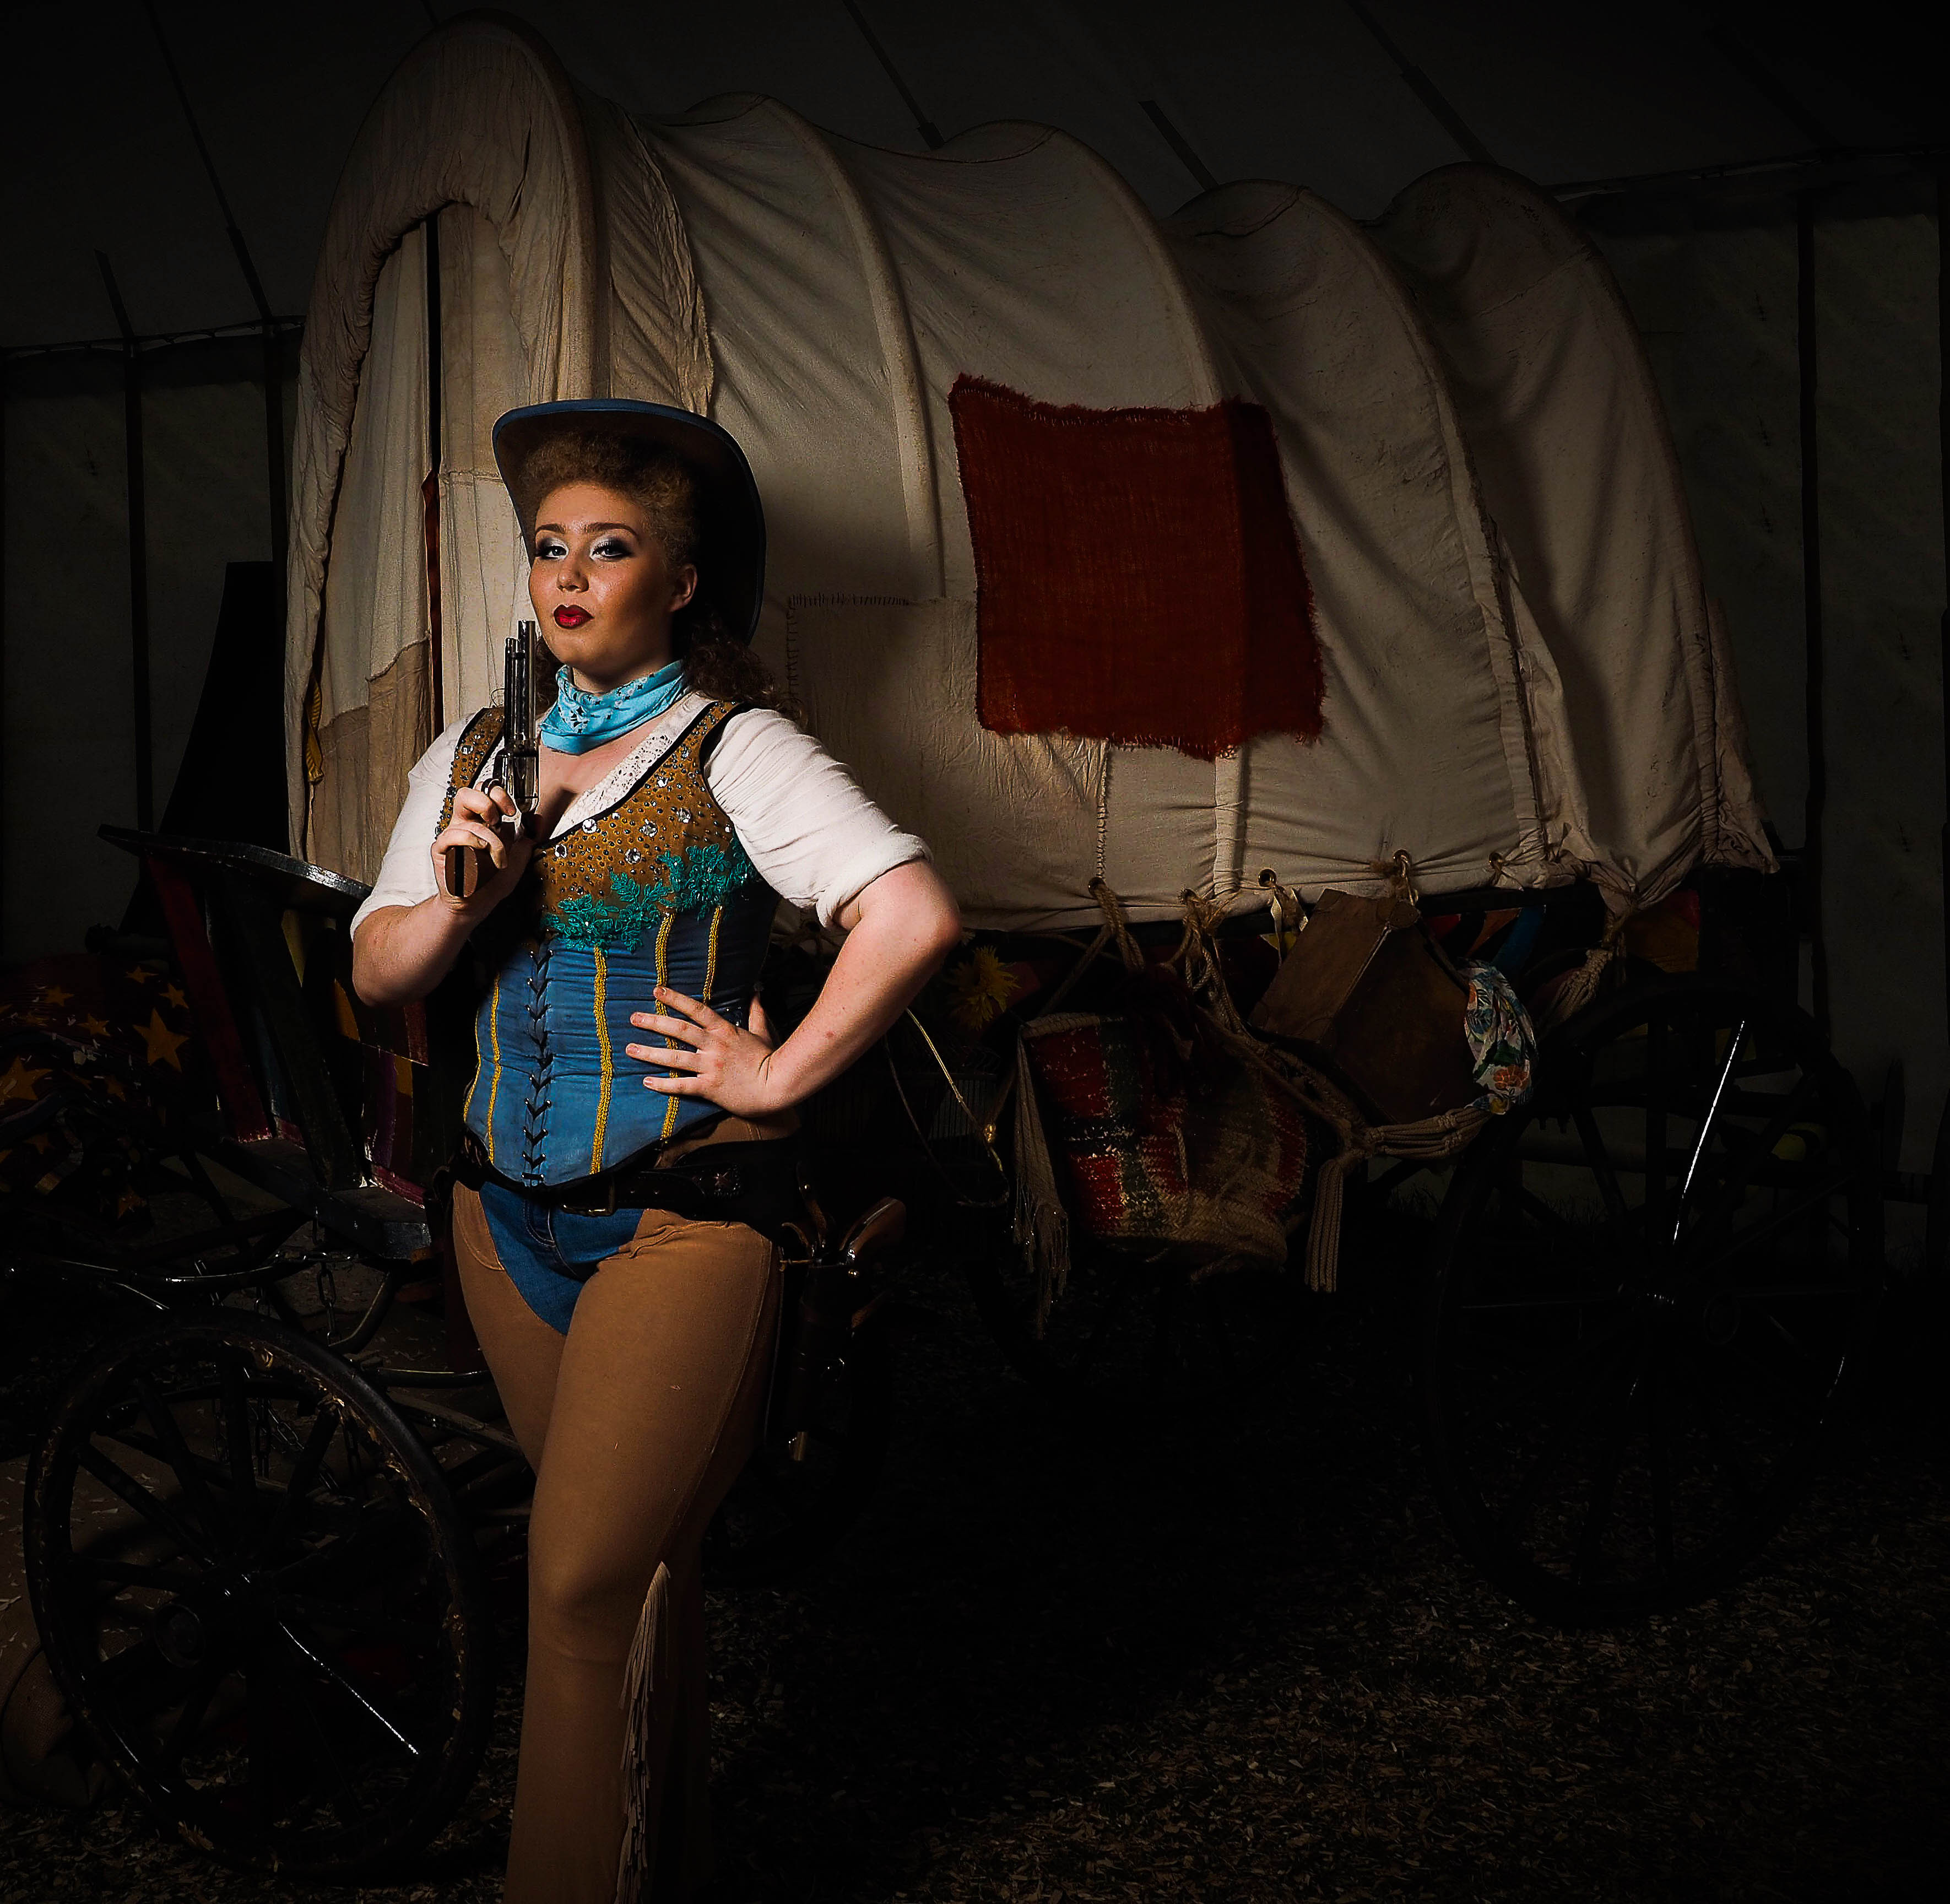 Cowgirl - Giffords Circus